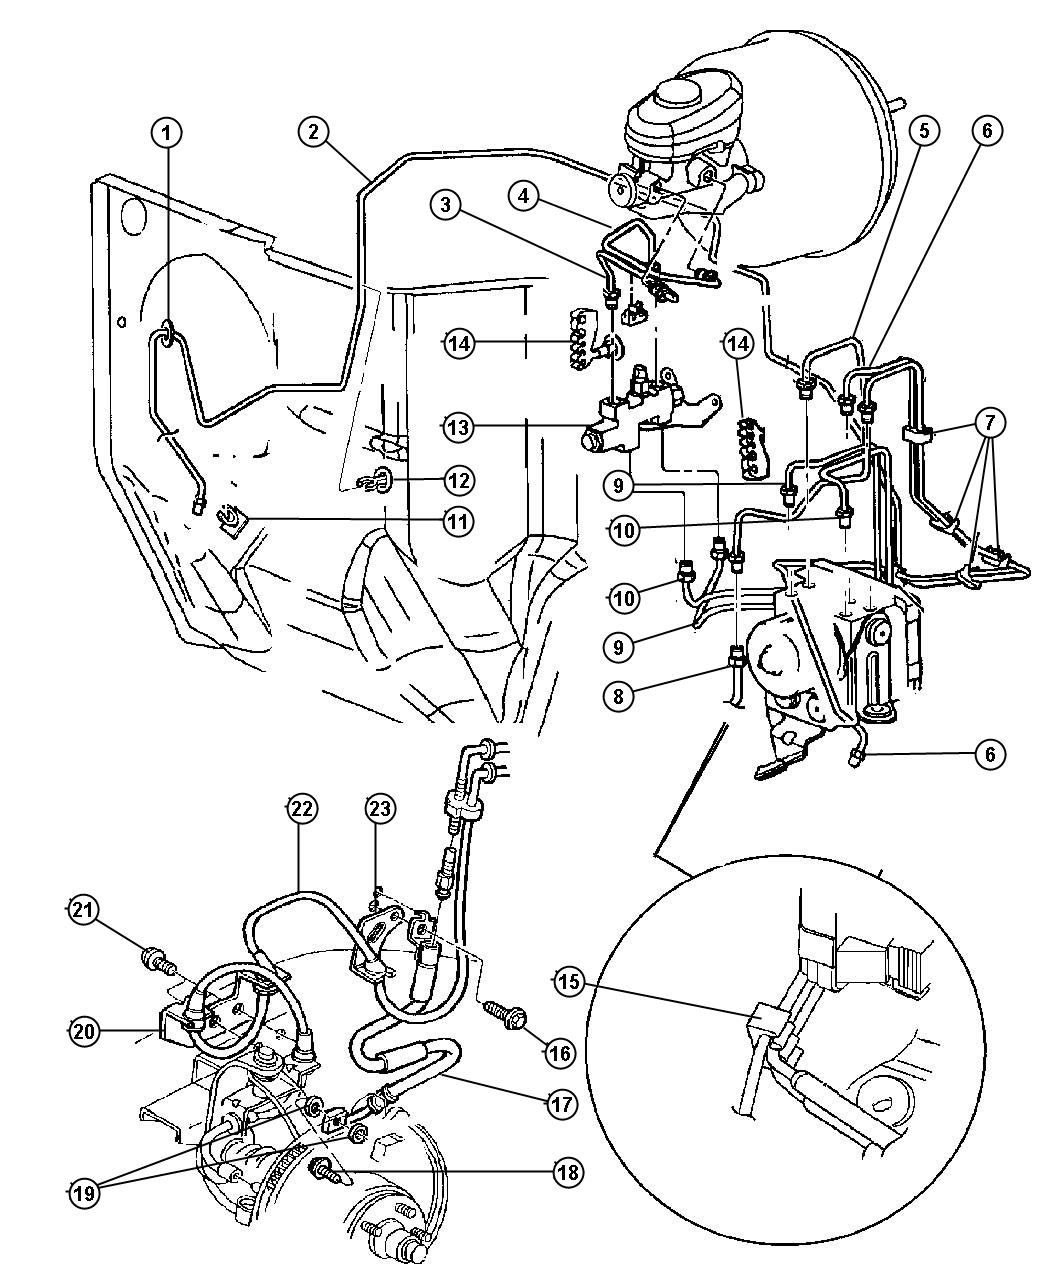 Chevrolet 350 Hei Wiring Diagram Get Free Image About Source Chevy Tpi Big Block Firing Order Besides 87 Dual Tank 1976 Cadillac